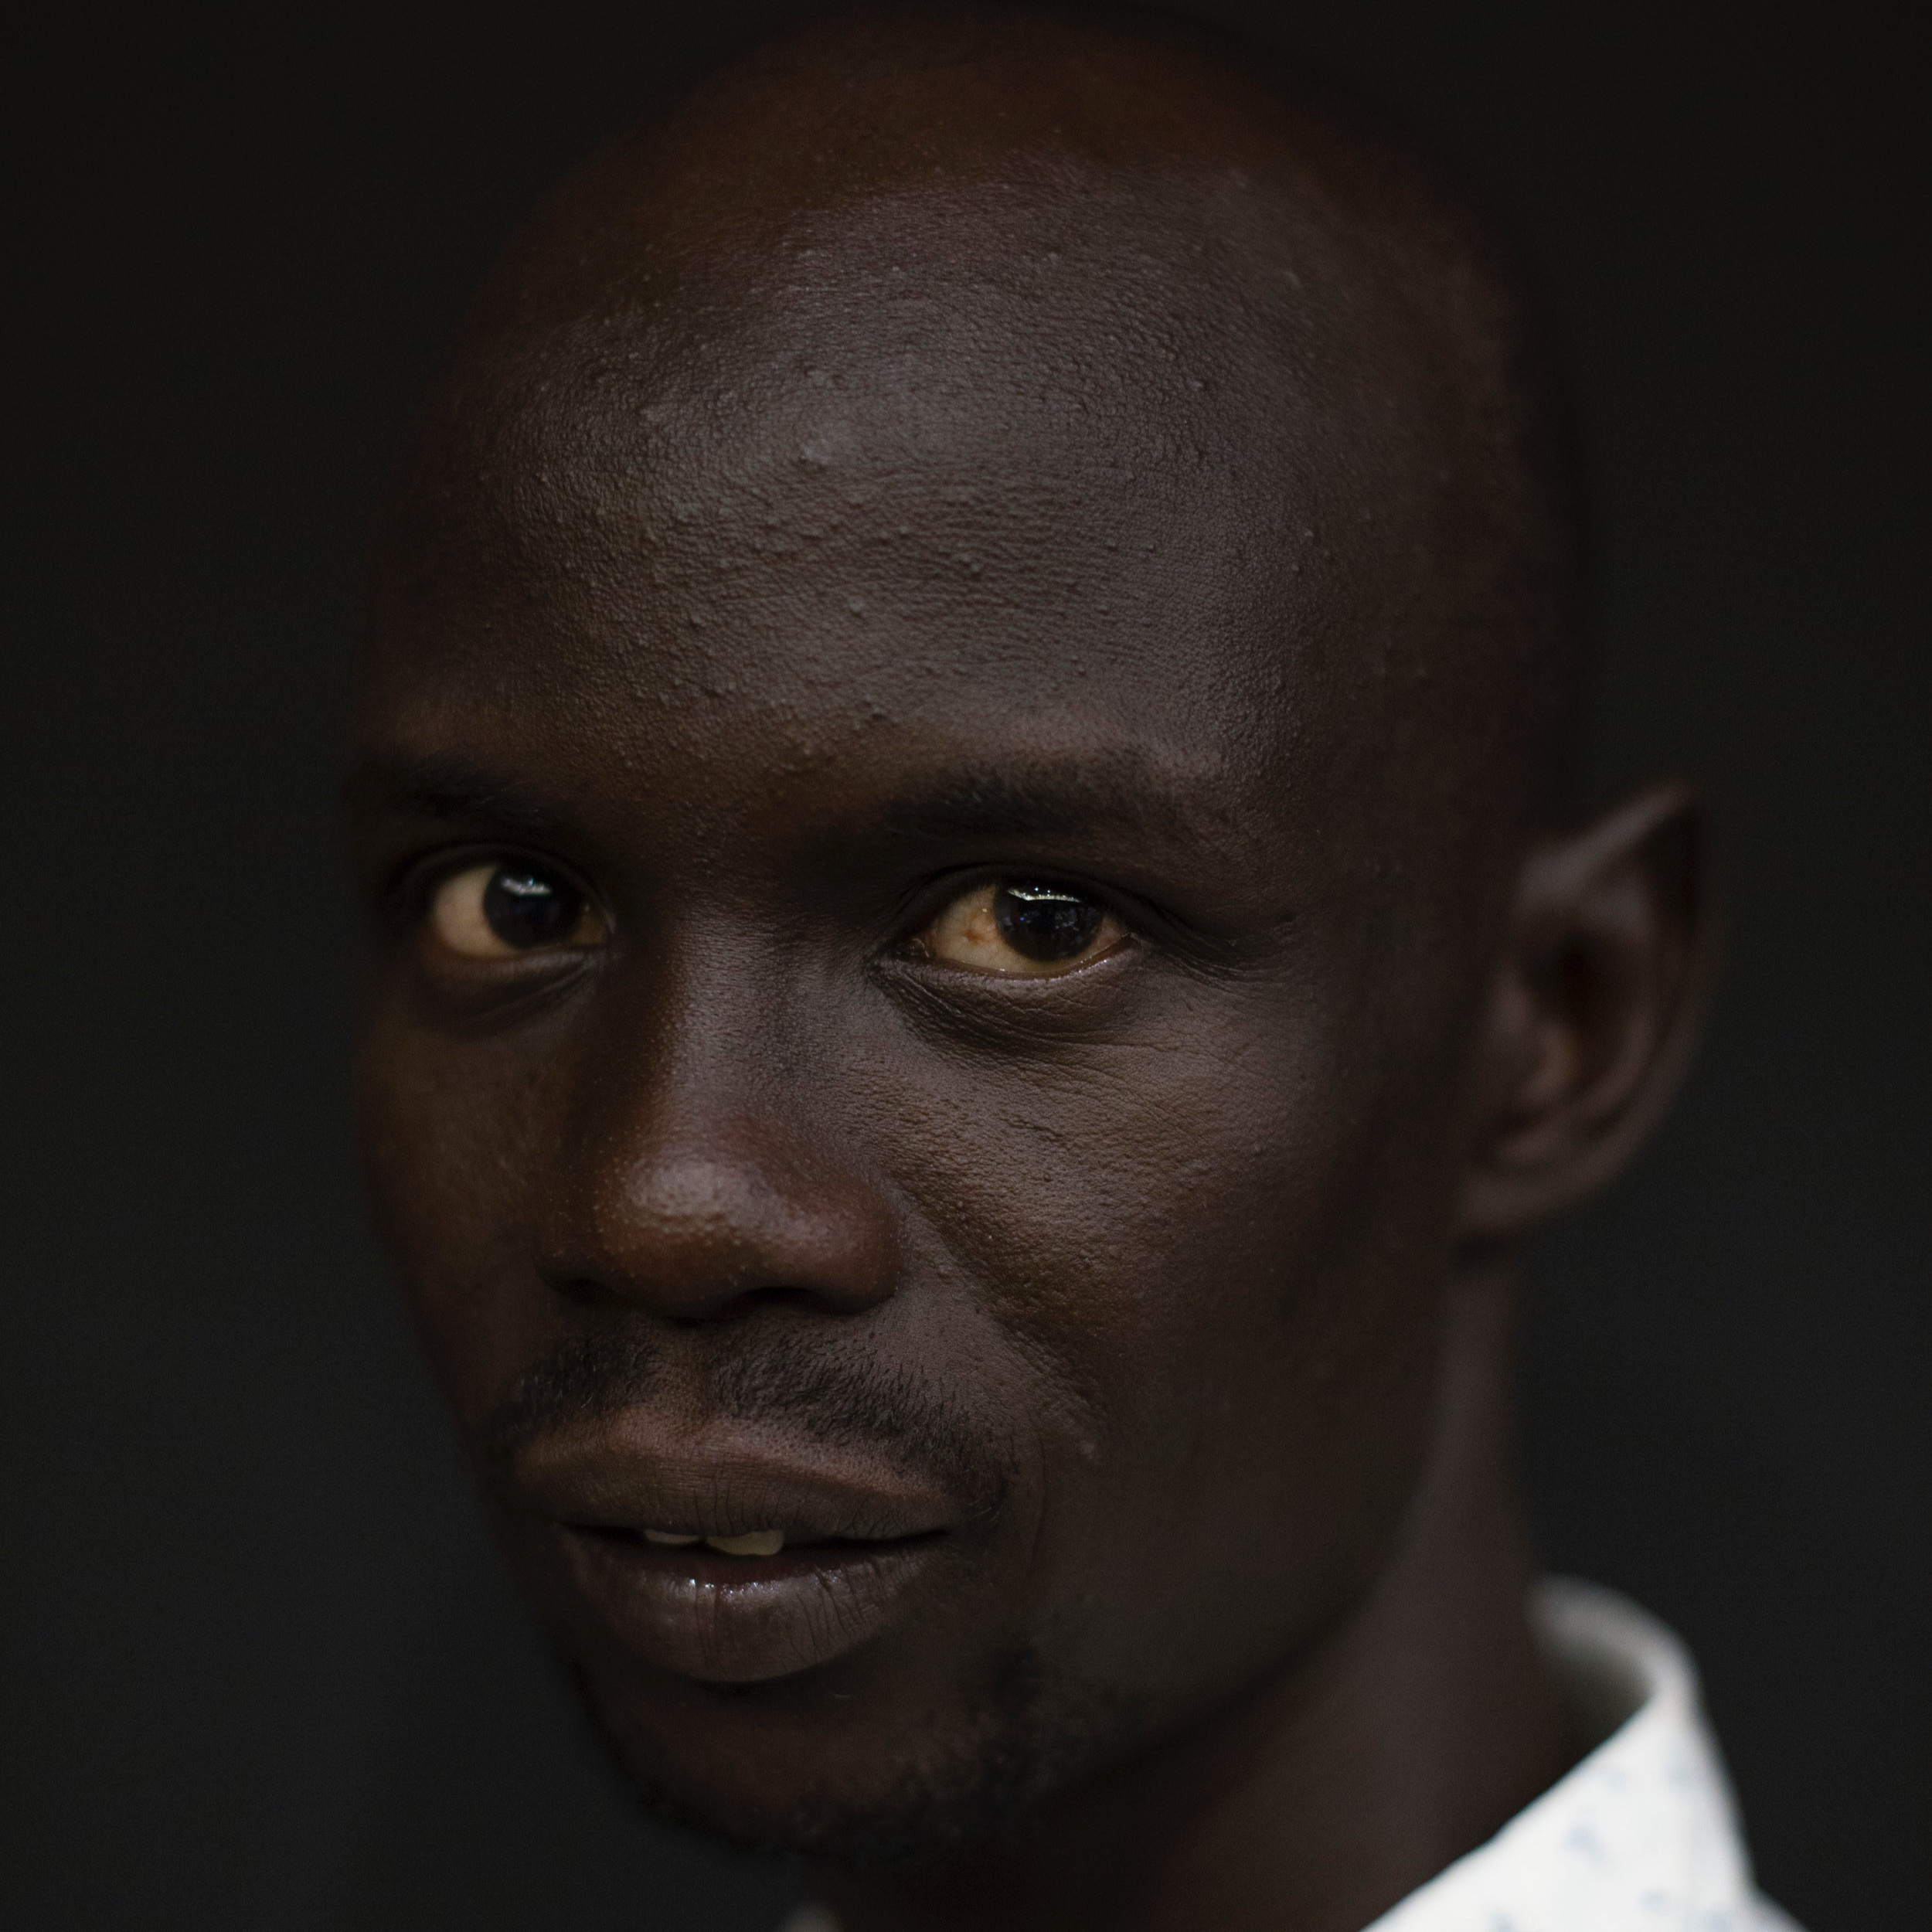 BULLEN CHOL  Bullen Chol (Akuot Chol Mayak) is an independent photographer and filmmaker dedicated to documenting social and political issues in South Sudan. He contributes to various newspapers and news agencies around the world.   @bullen_chol